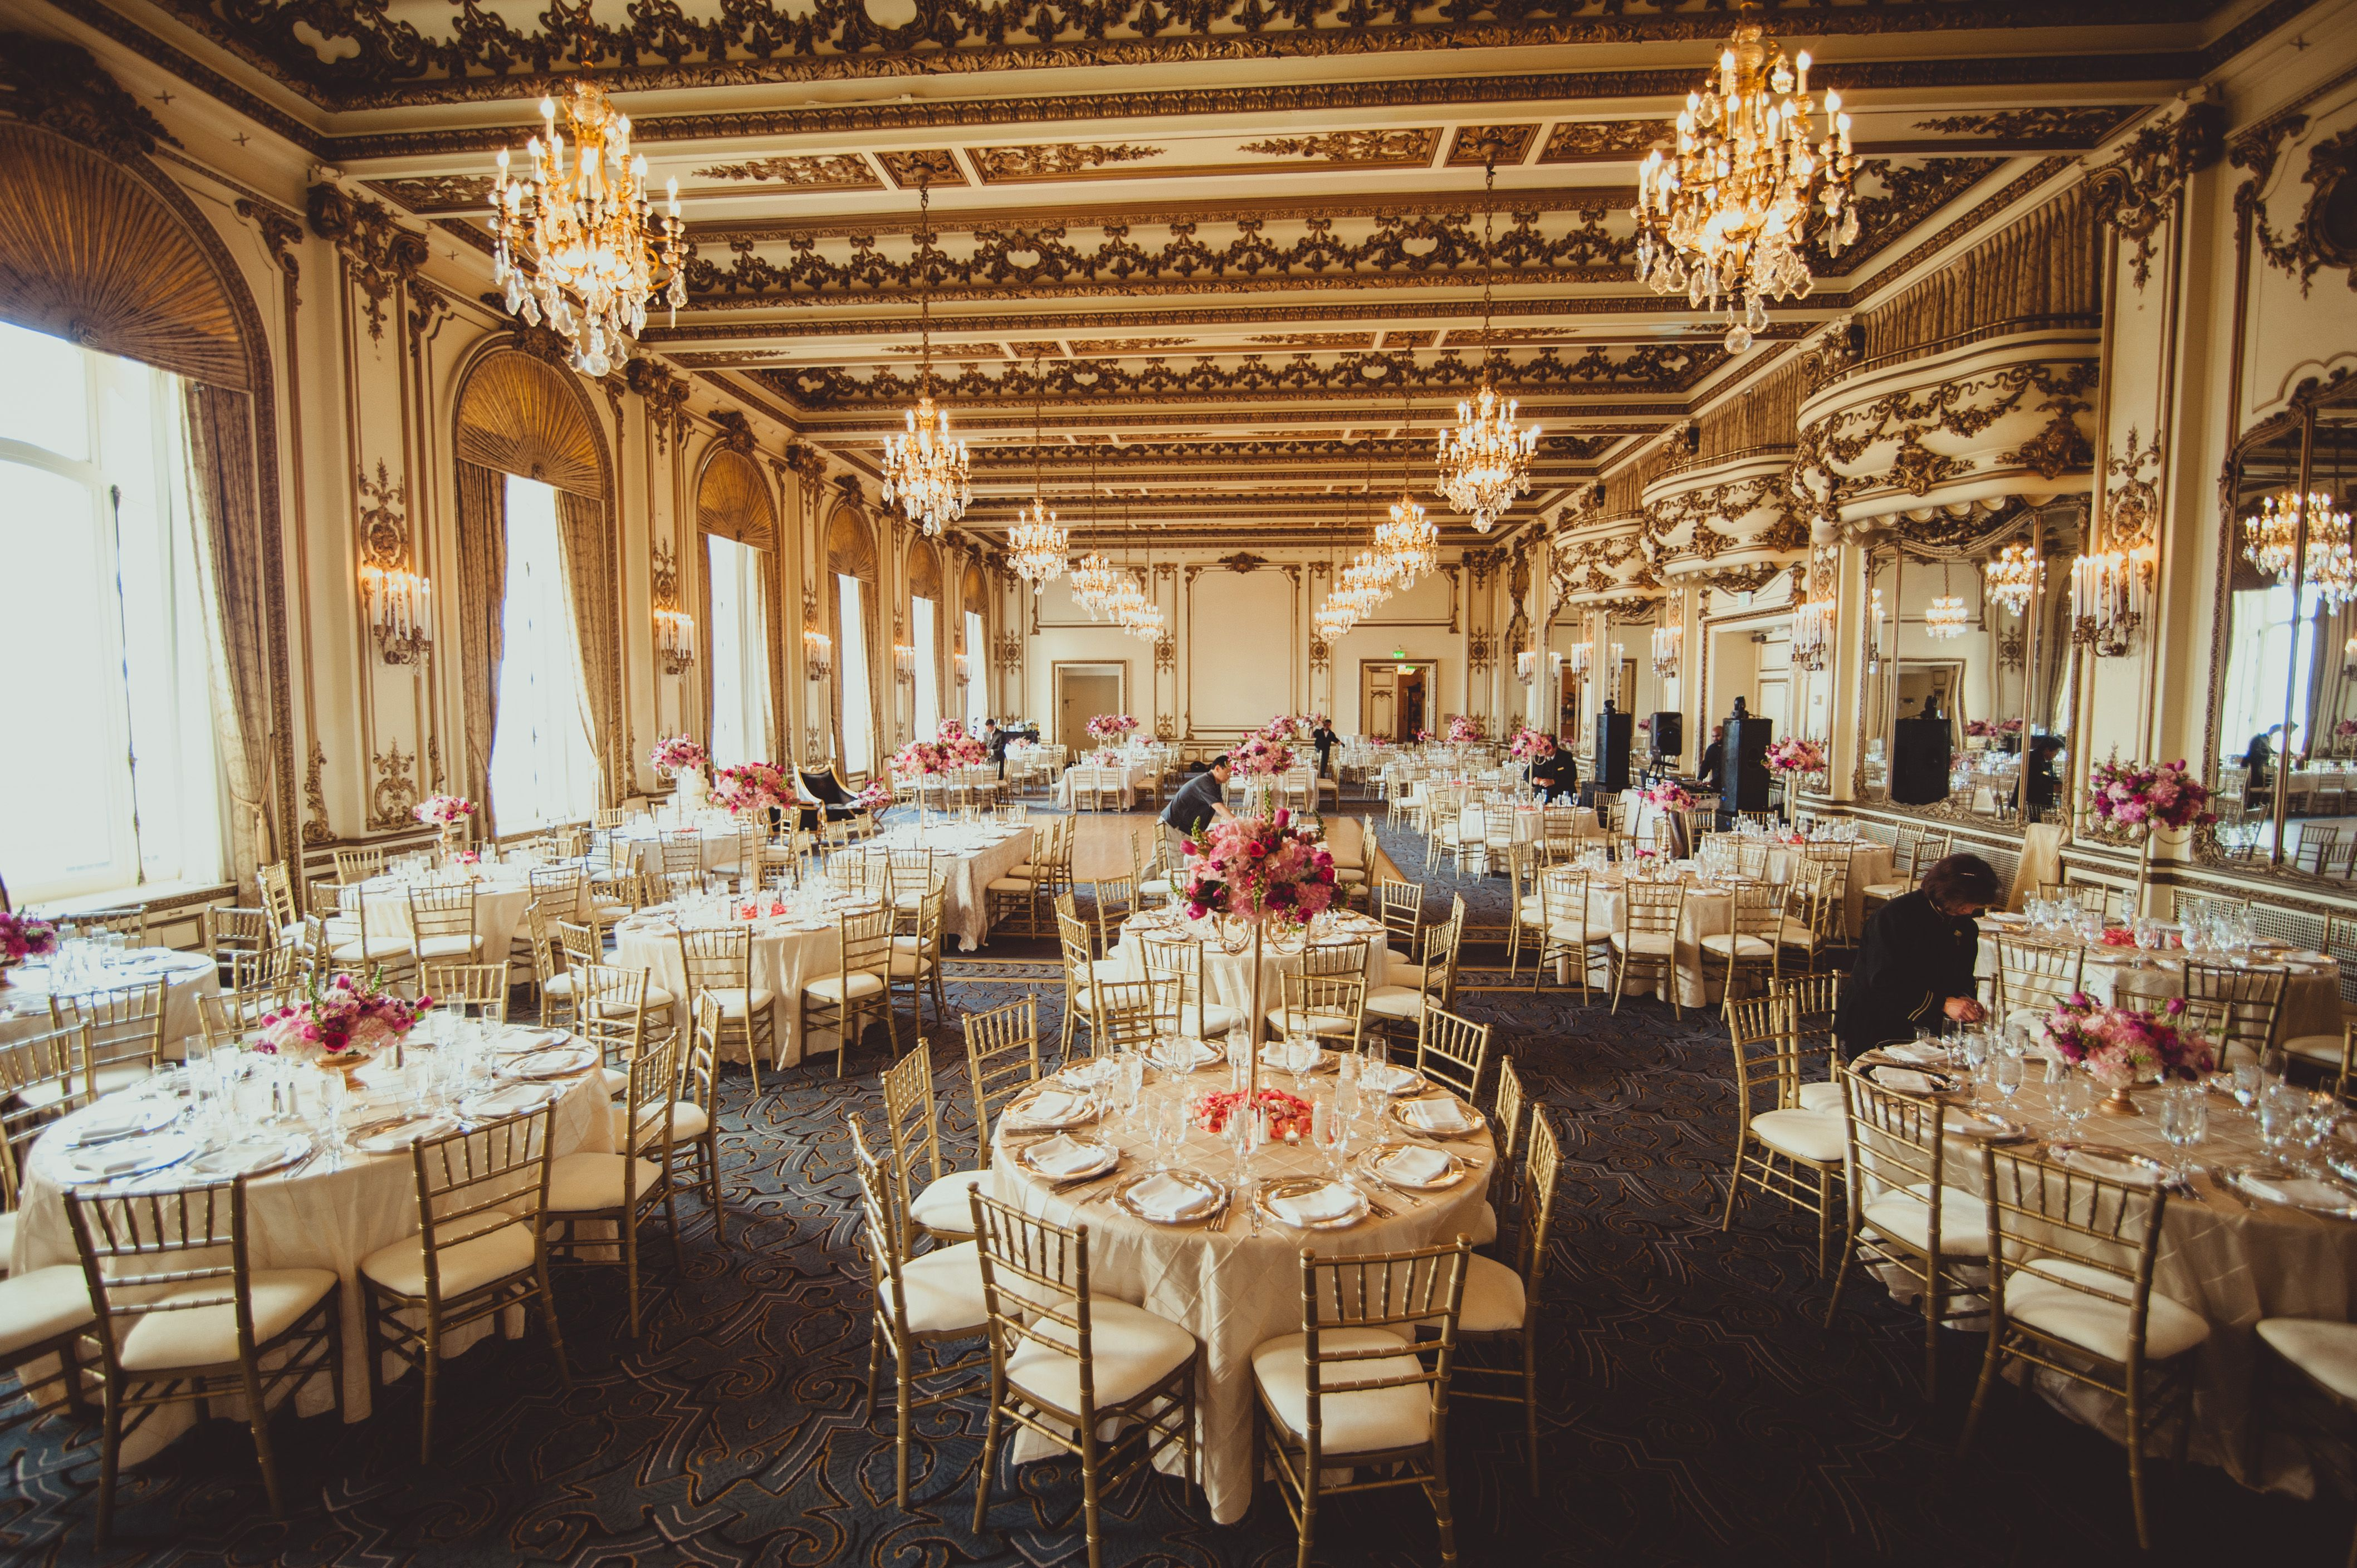 Lunch Wedding Reception At Gold Room Fairmont San Francisco